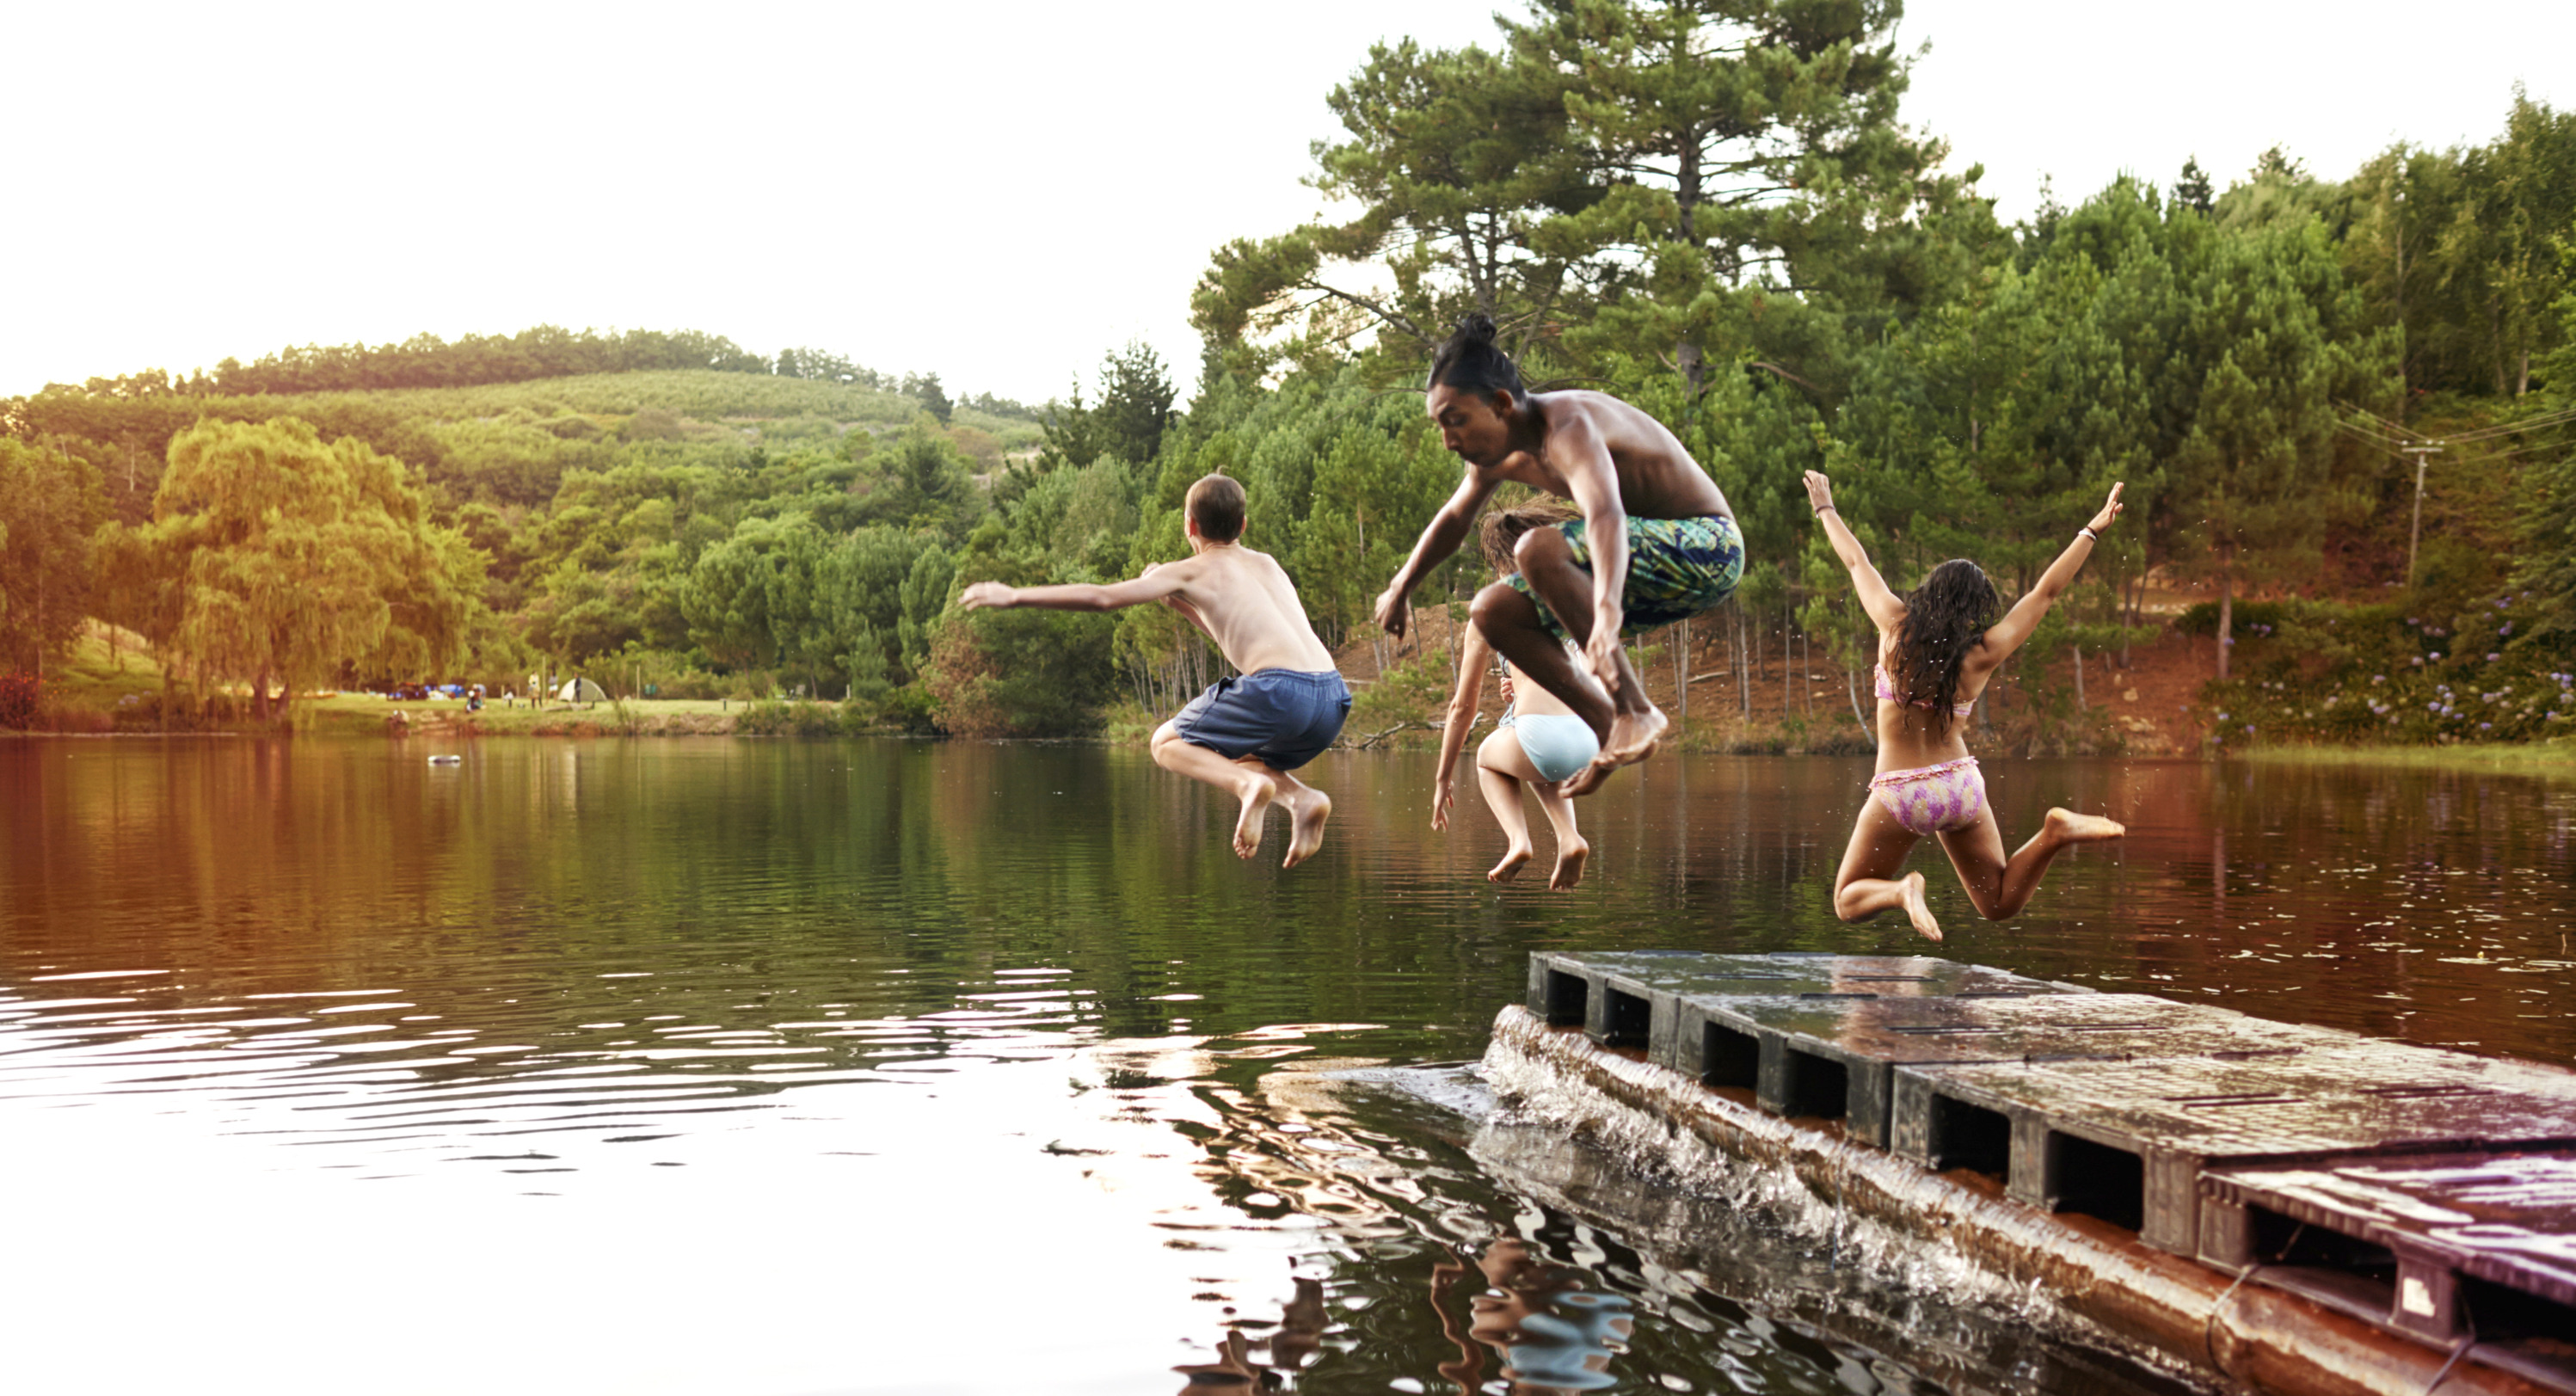 Kids%20Jumping%20into%20the%20Lake_edited.jpg